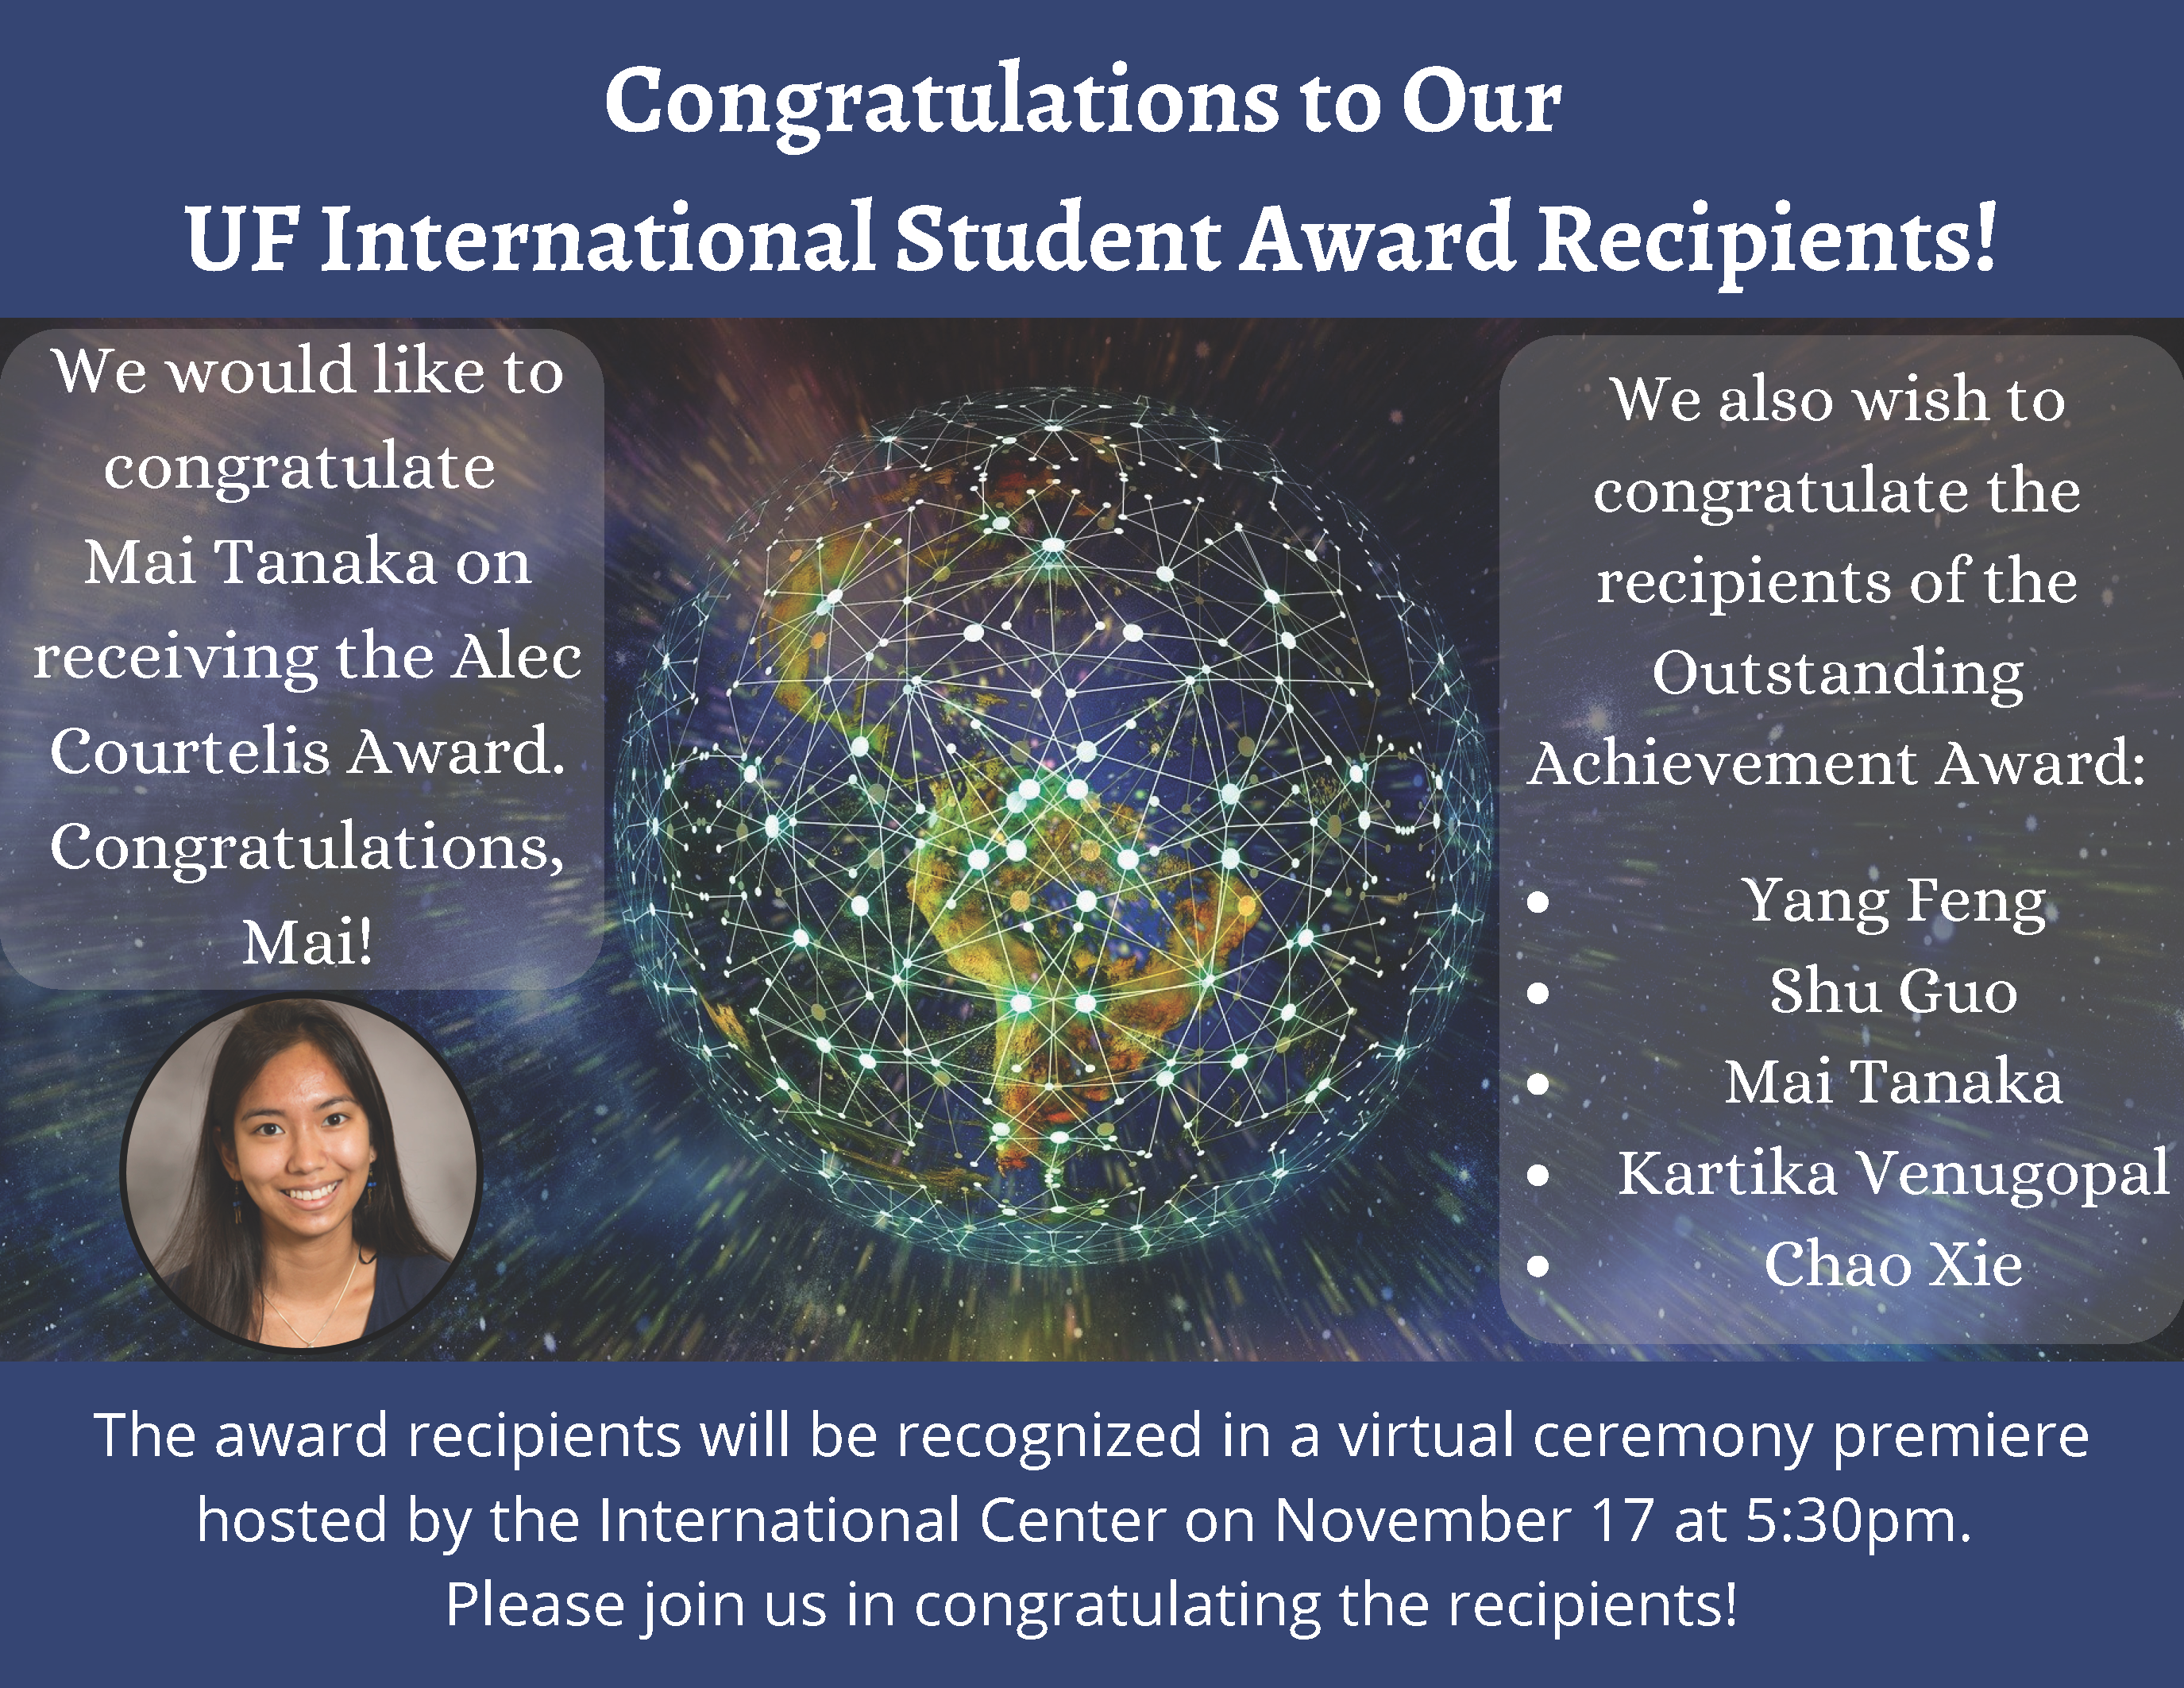 Congratulations to Our UF International Student Award Recipients!